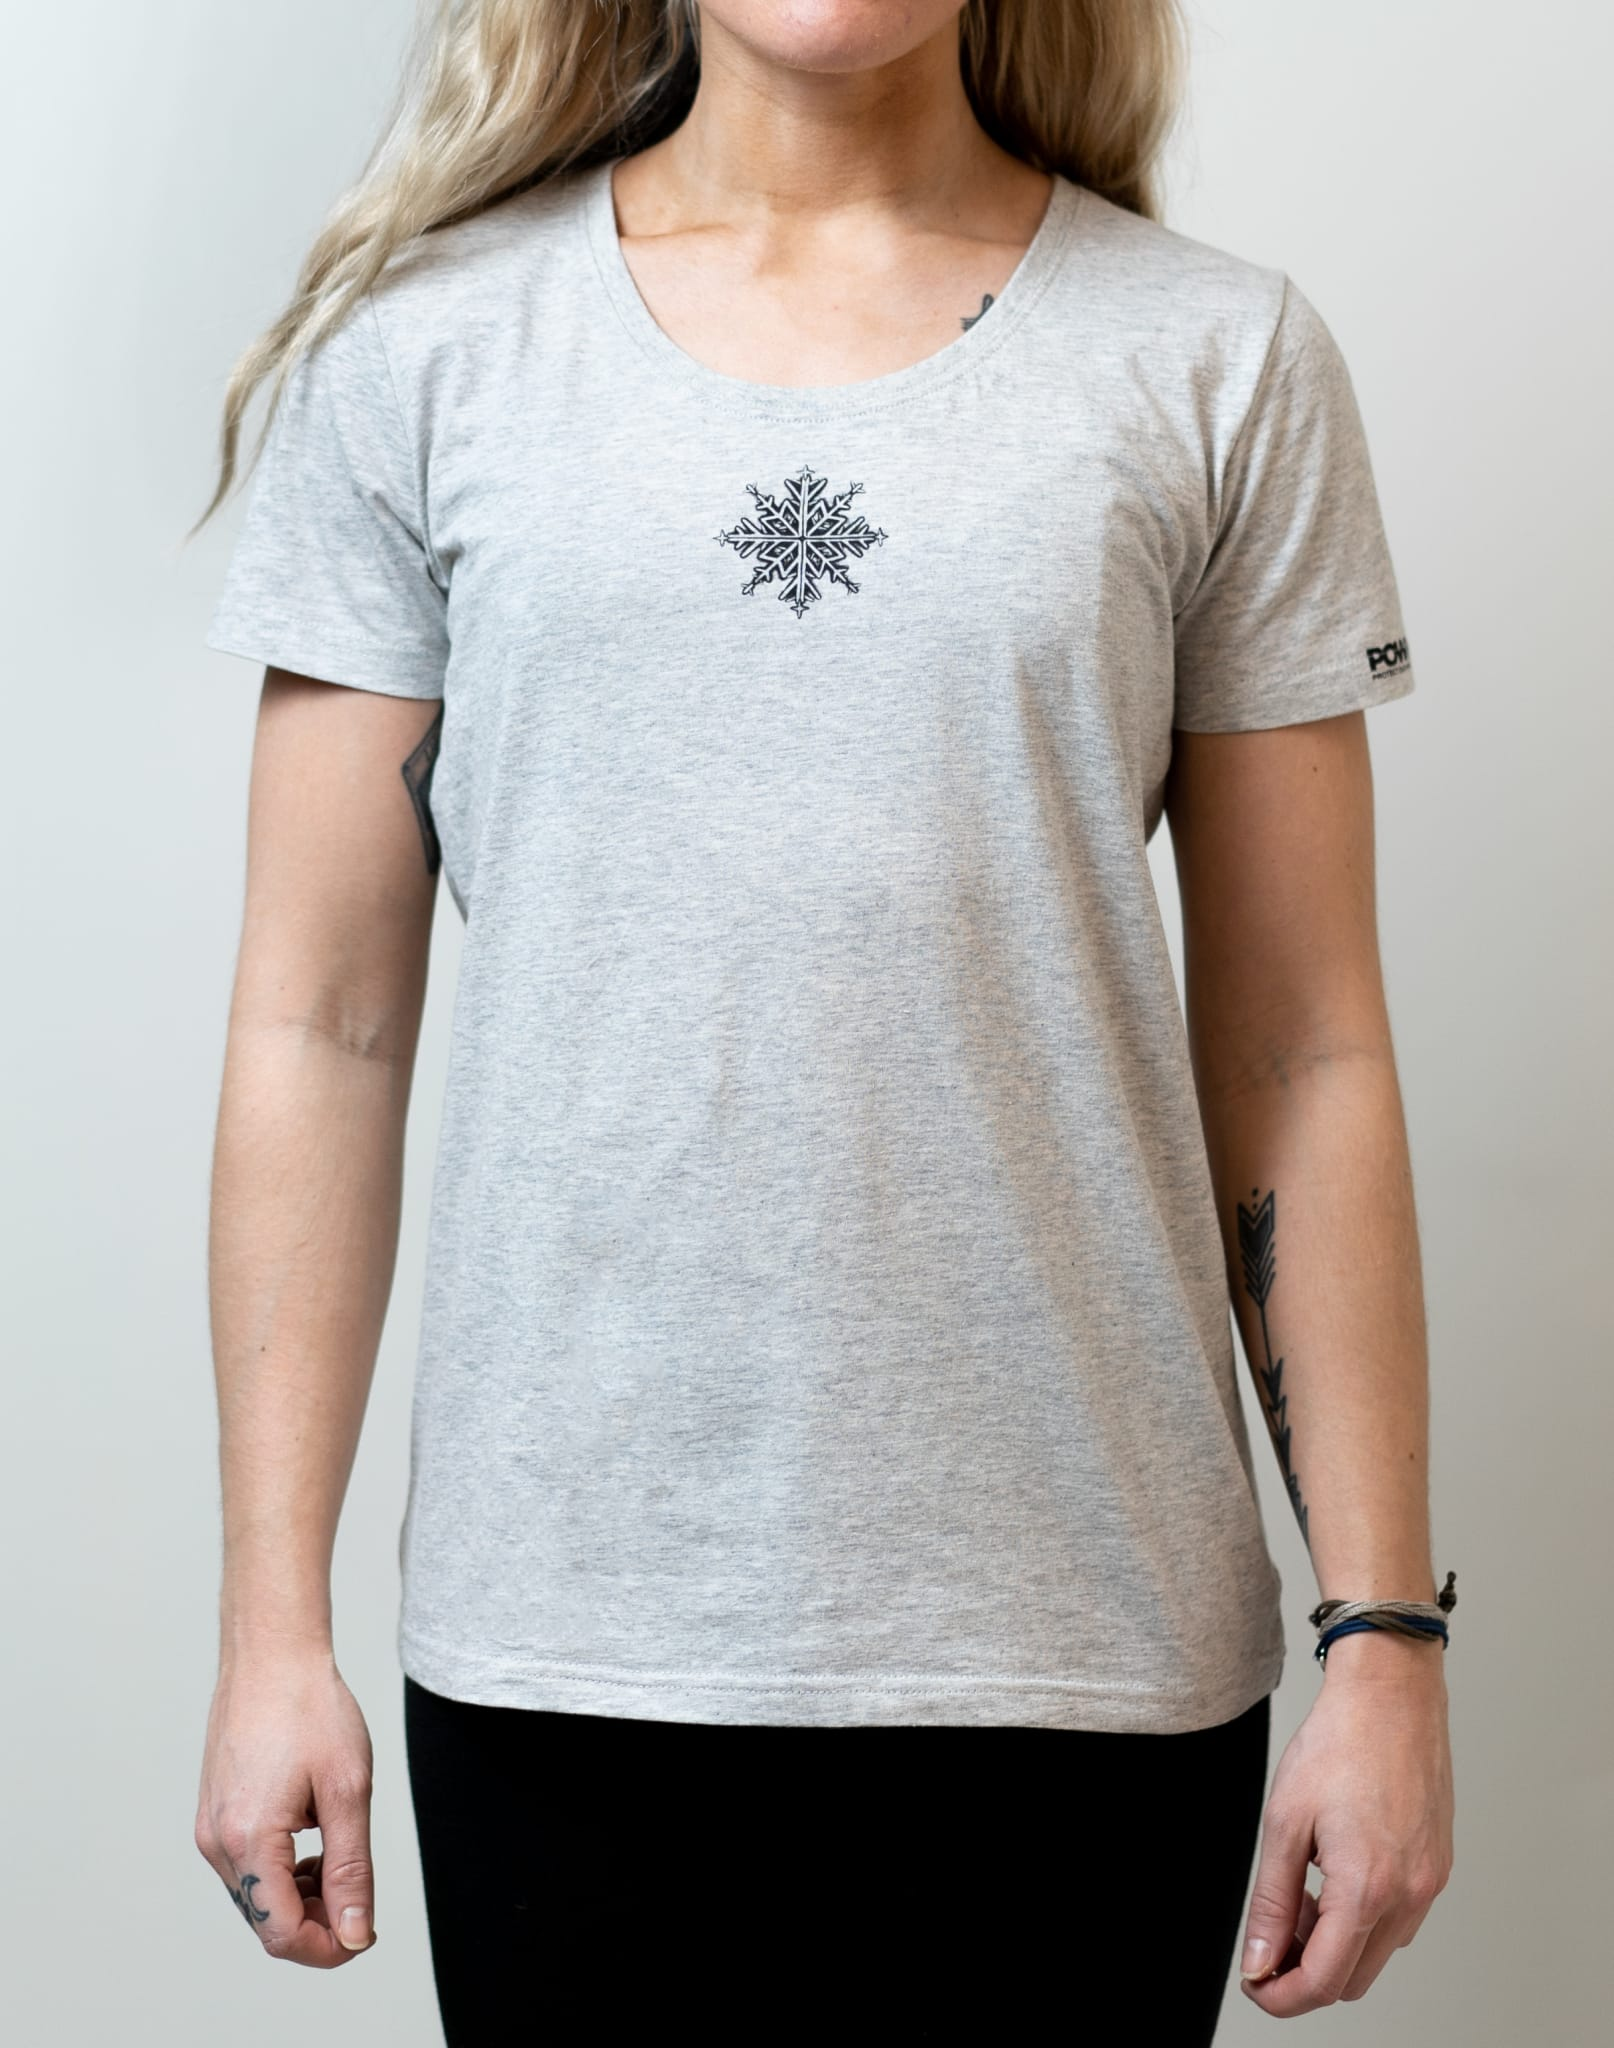 Super Hero Tee: The snowflake